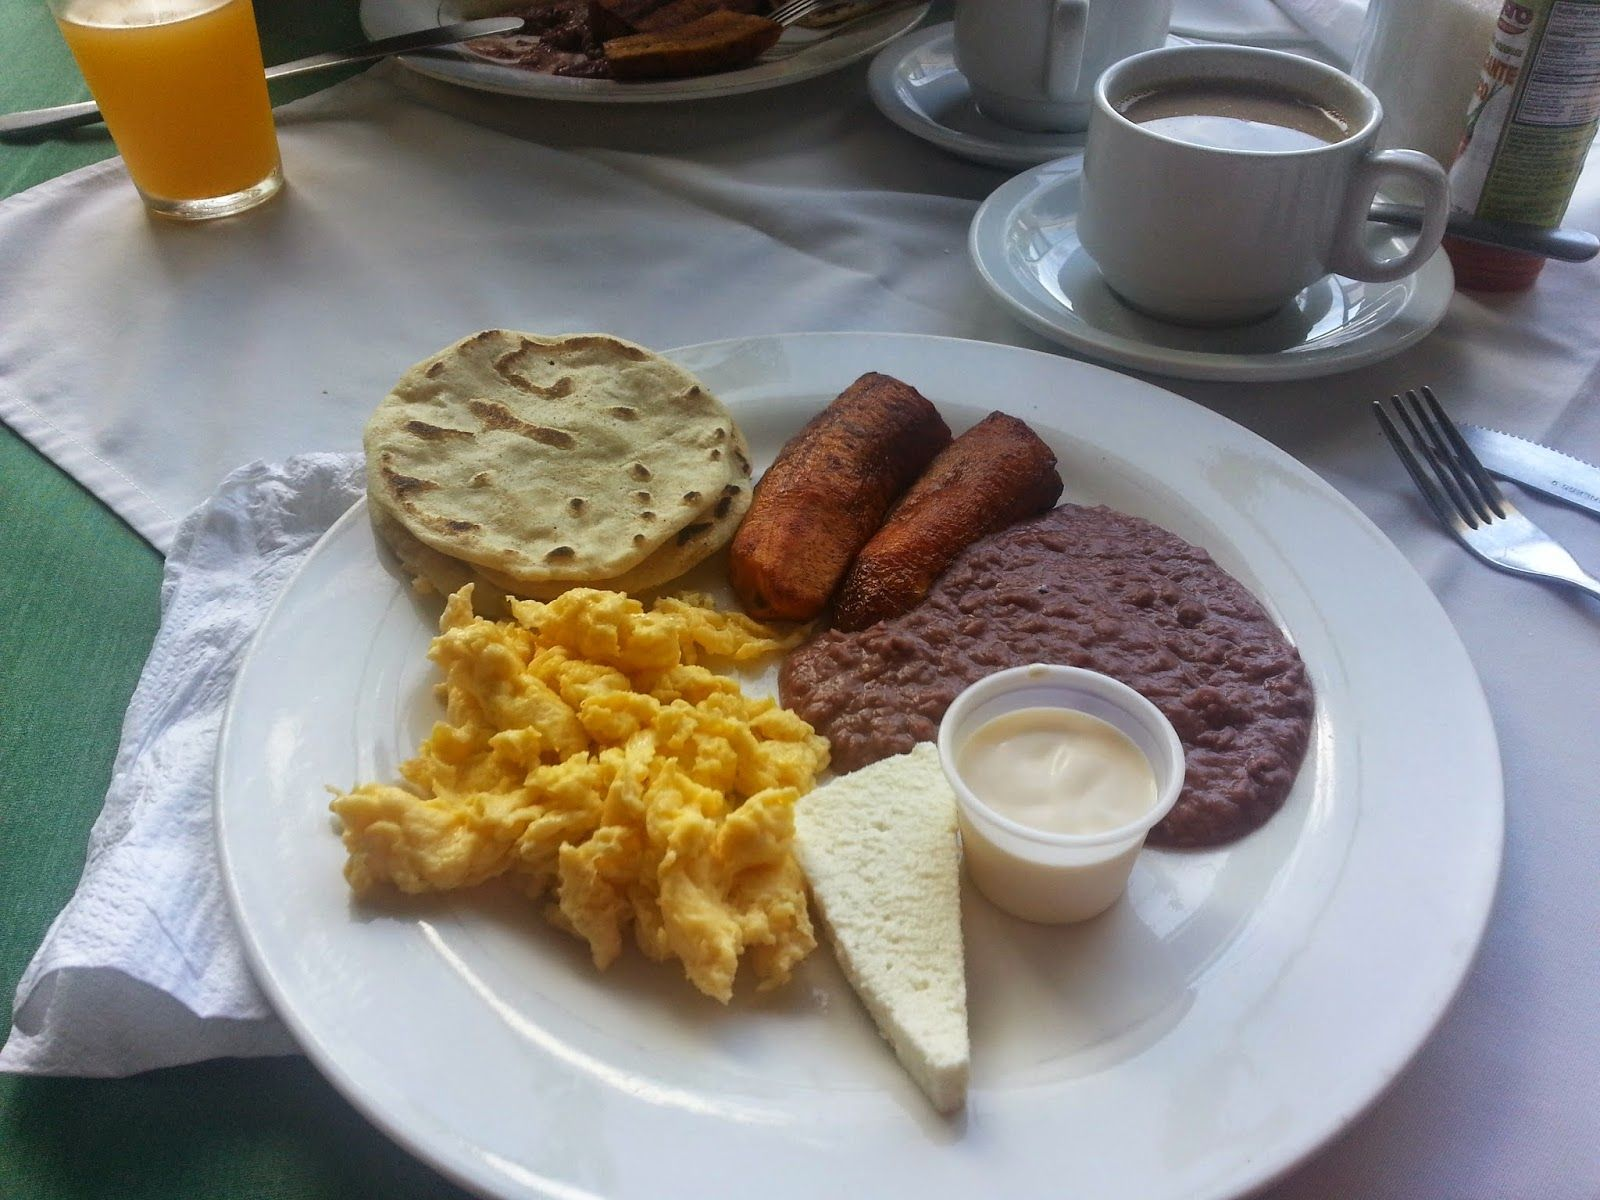 El Salvador food.  Breakfast in El Salvador, typical breakfast consists of Eggs, beans, cream, plantains  #breakfast #elsalvador #toursinelsalvador #elsalvadorfood El Salvador food.  Breakfast in El Salvador, typical breakfast consists of Eggs, beans, cream, plantains  #breakfast #elsalvador #toursinelsalvador #elsalvadorfood